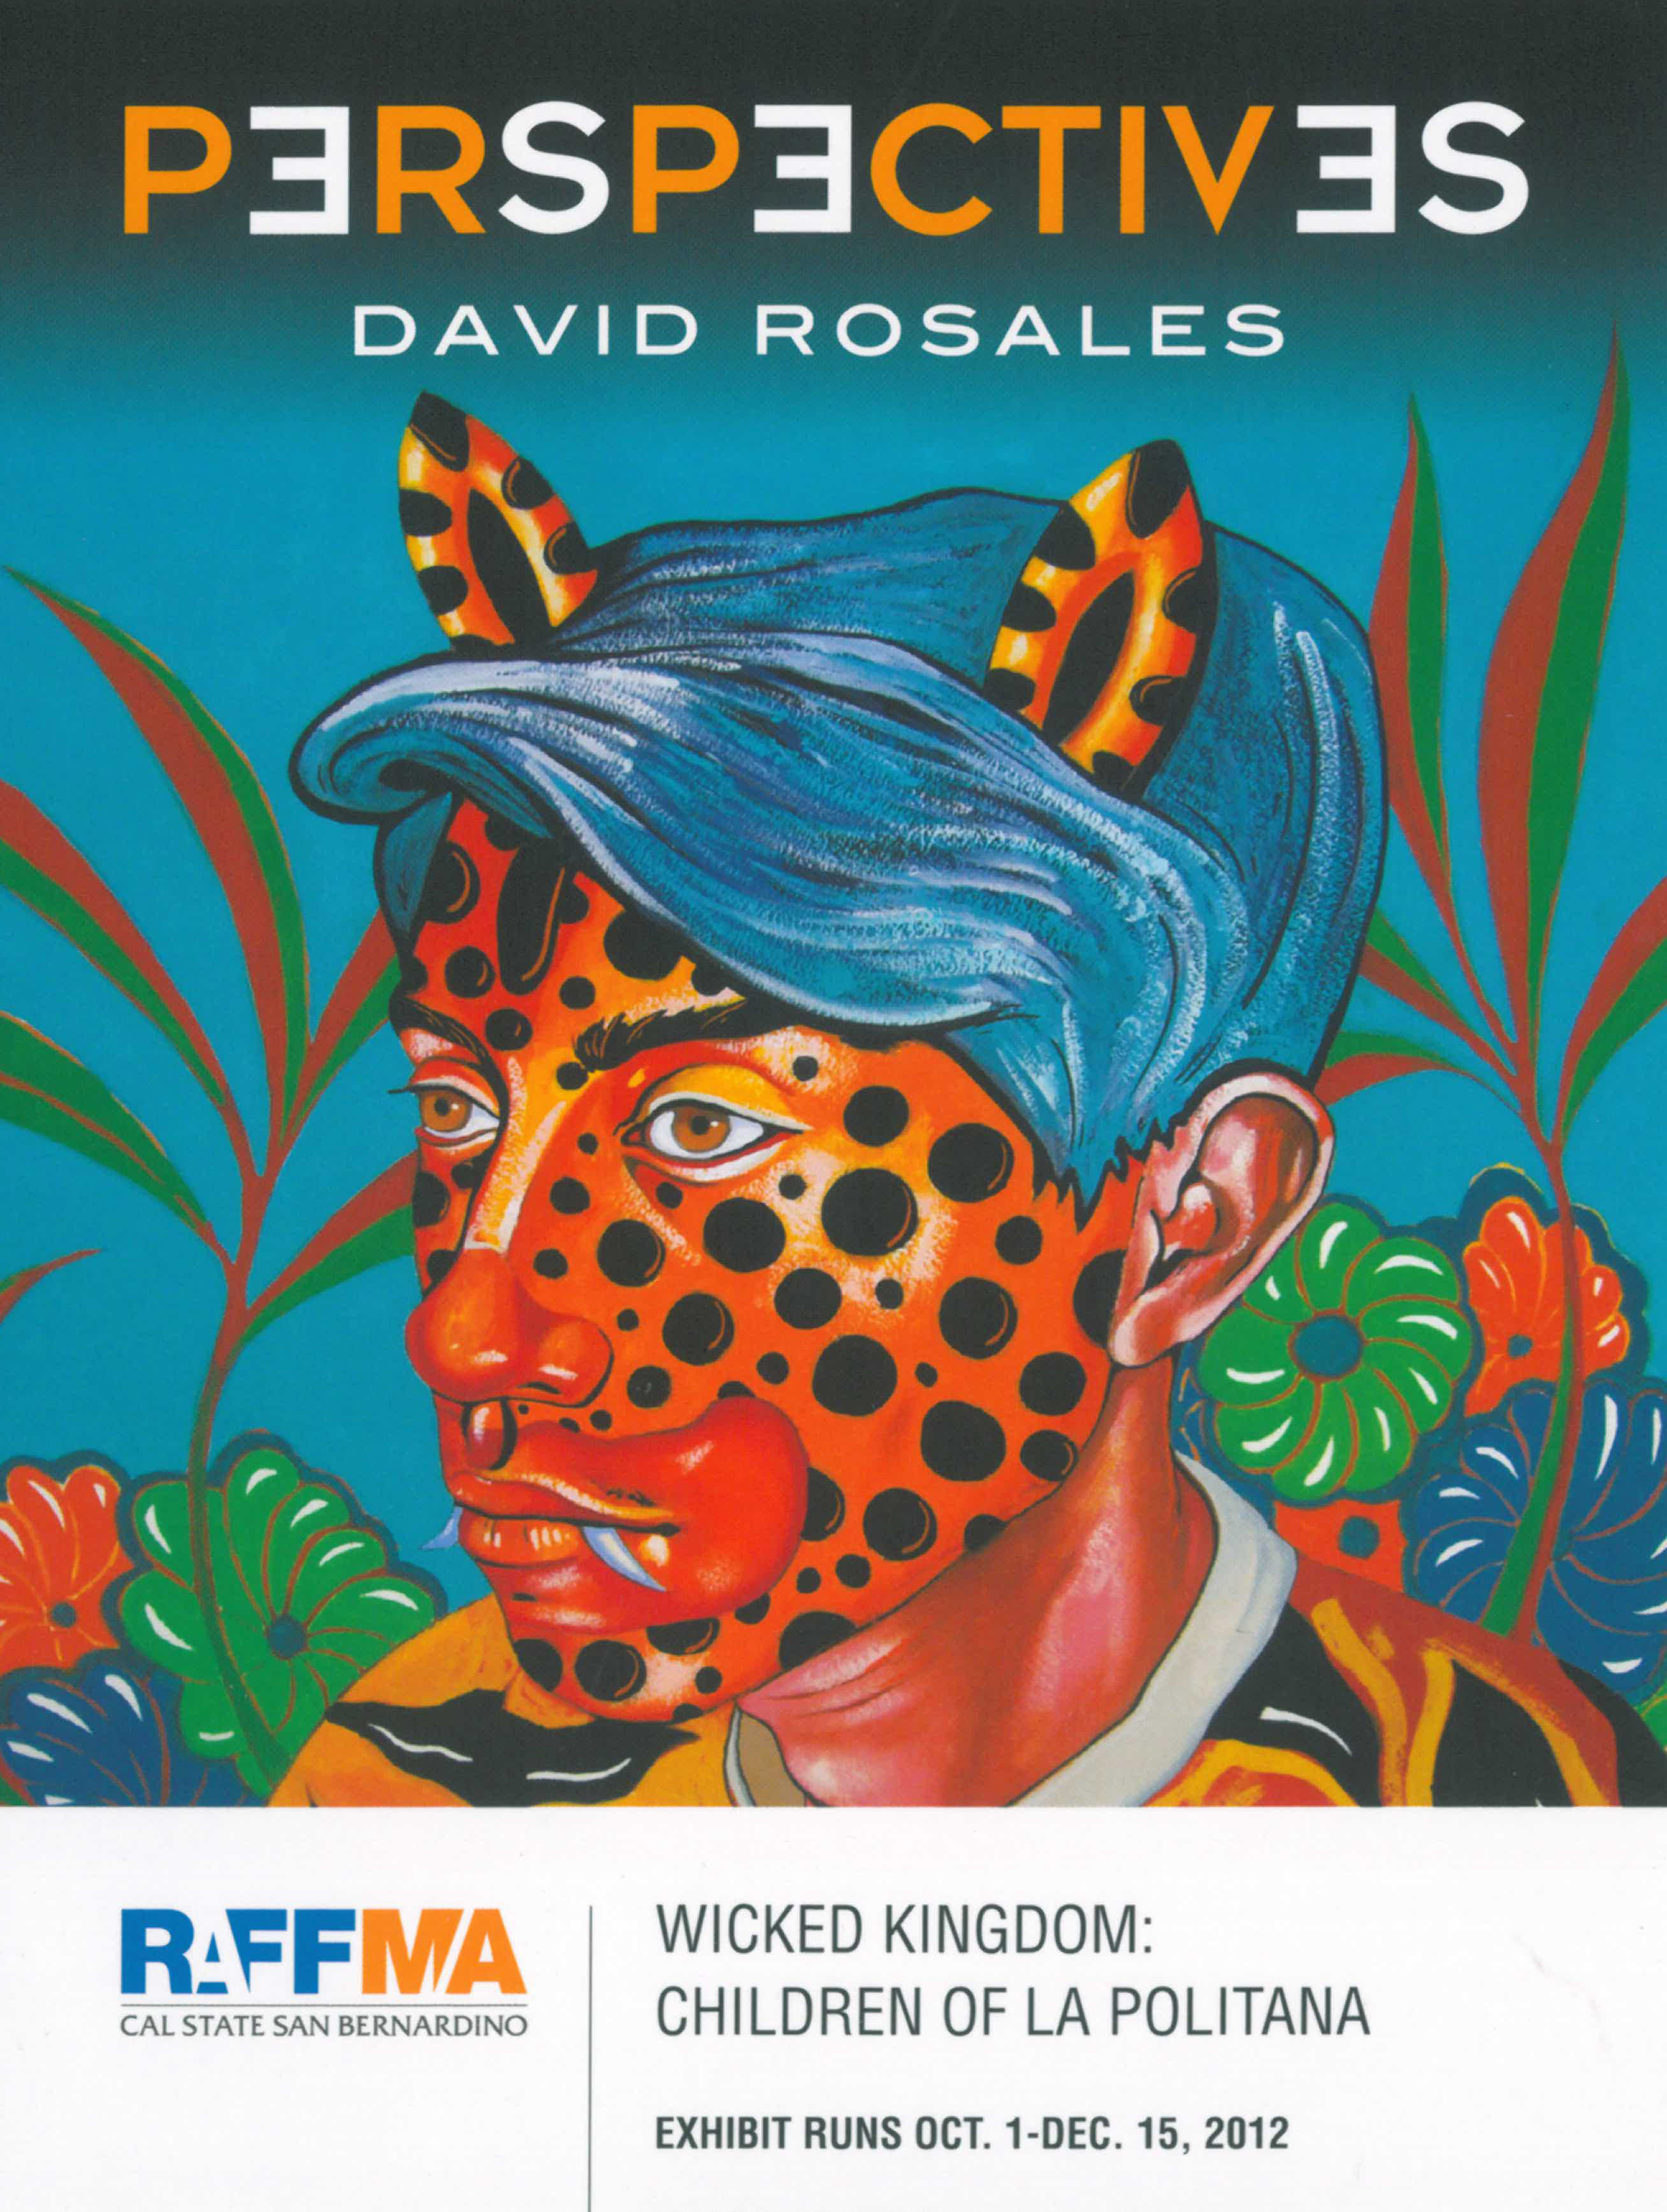 david rosales perspectives at raffma image